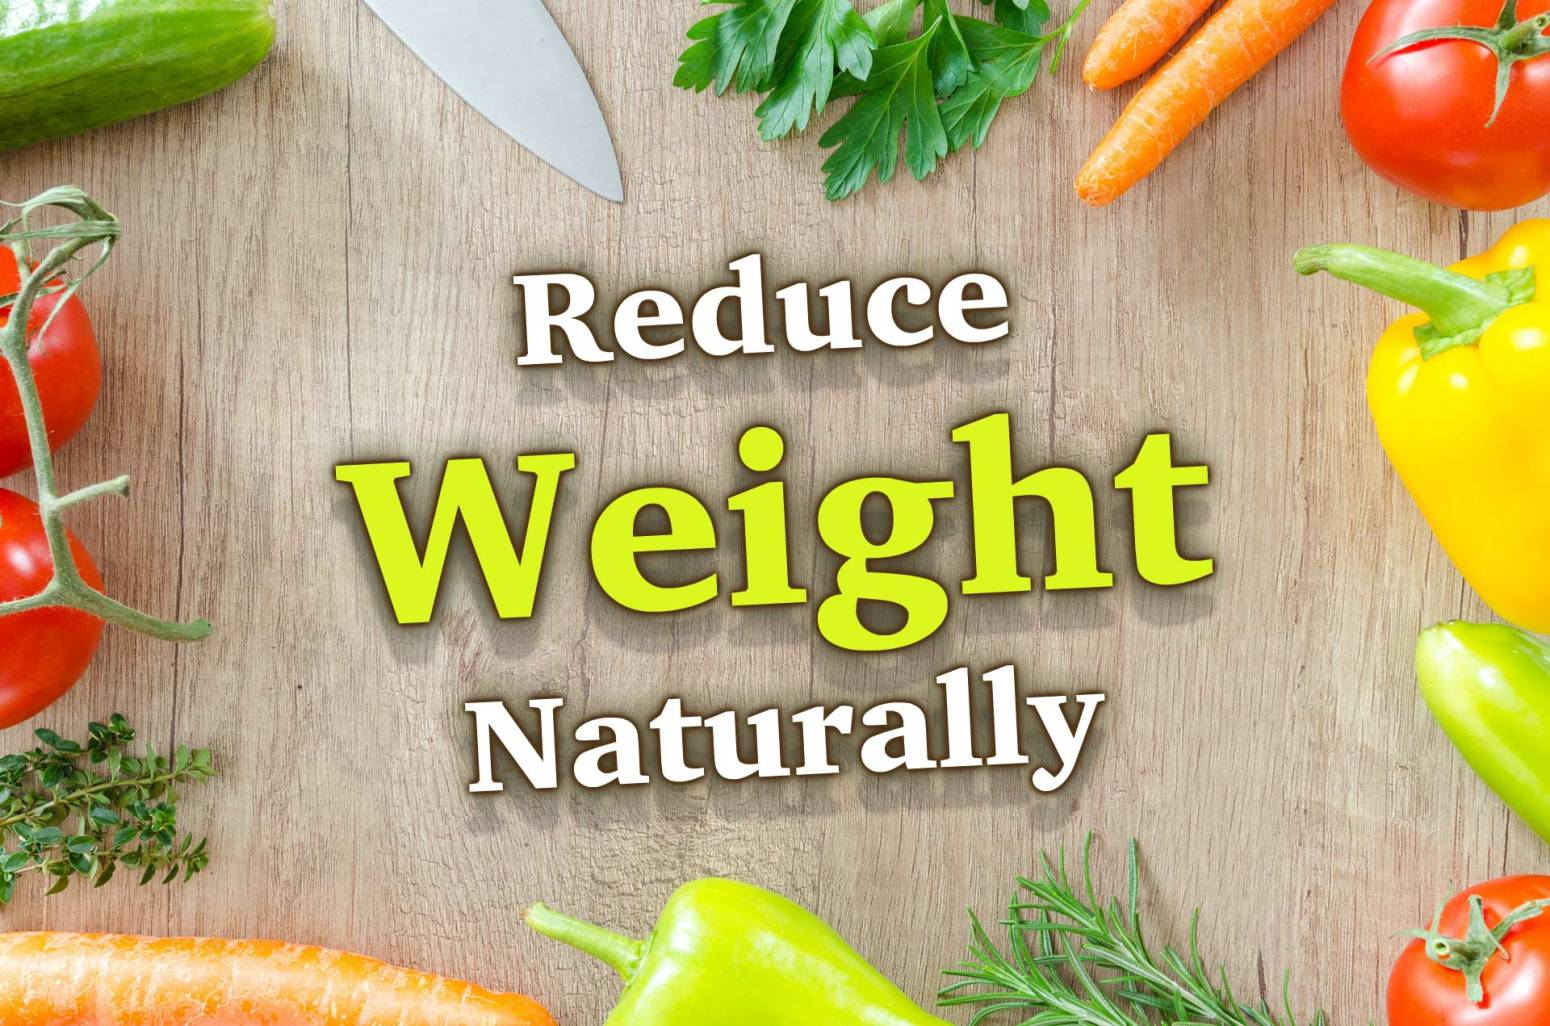 Let's reduce weight naturally in an easy way